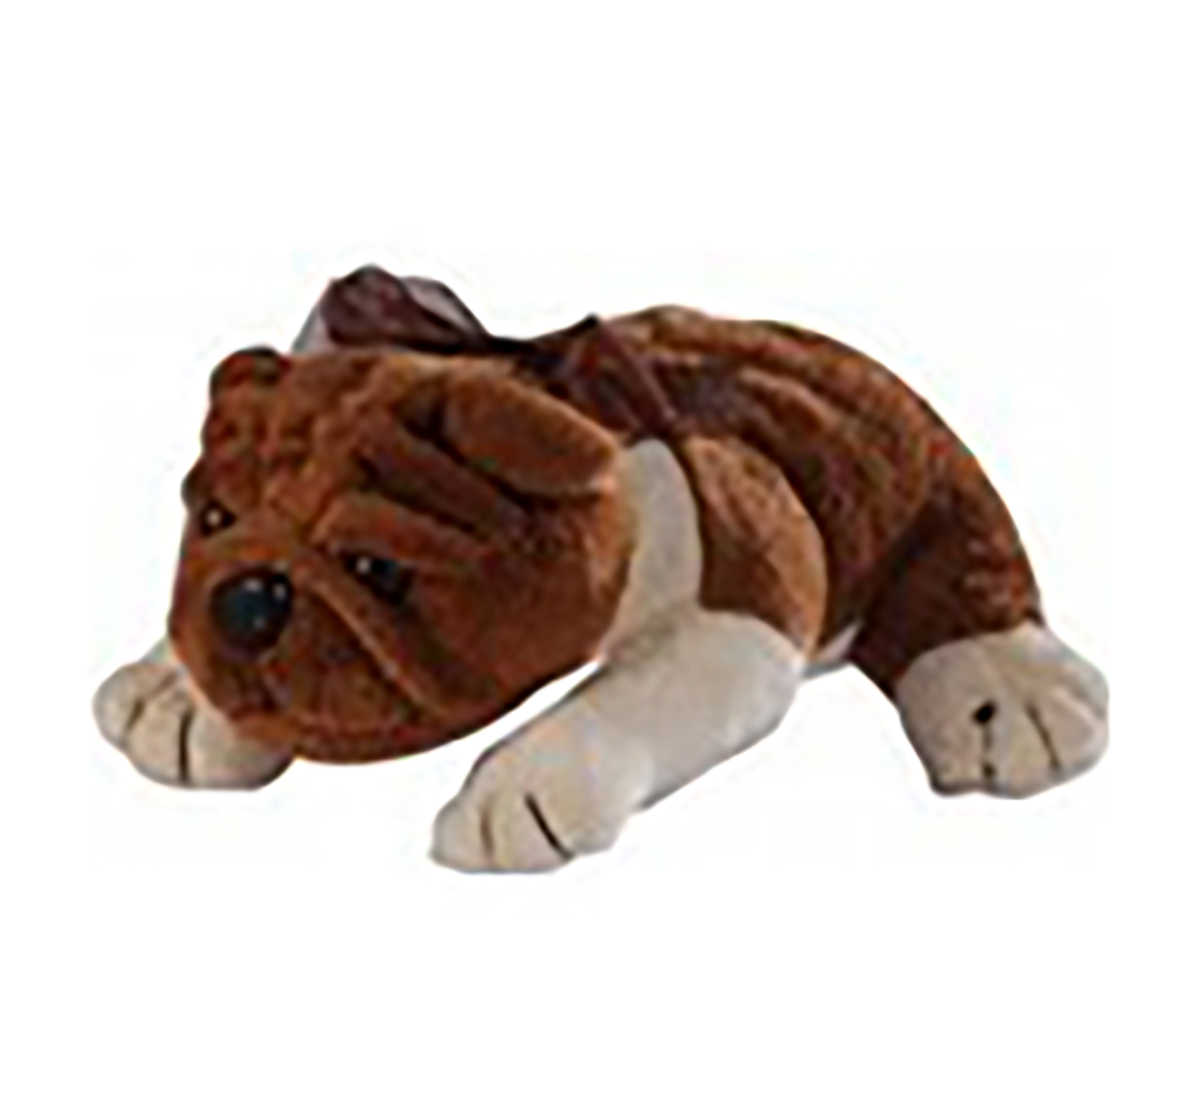 Soft Buddies | Soft Buddies Lying Bull Dog Large Quirky Soft Toys for Kids age 3Y+ - 37 Cm (Brown)